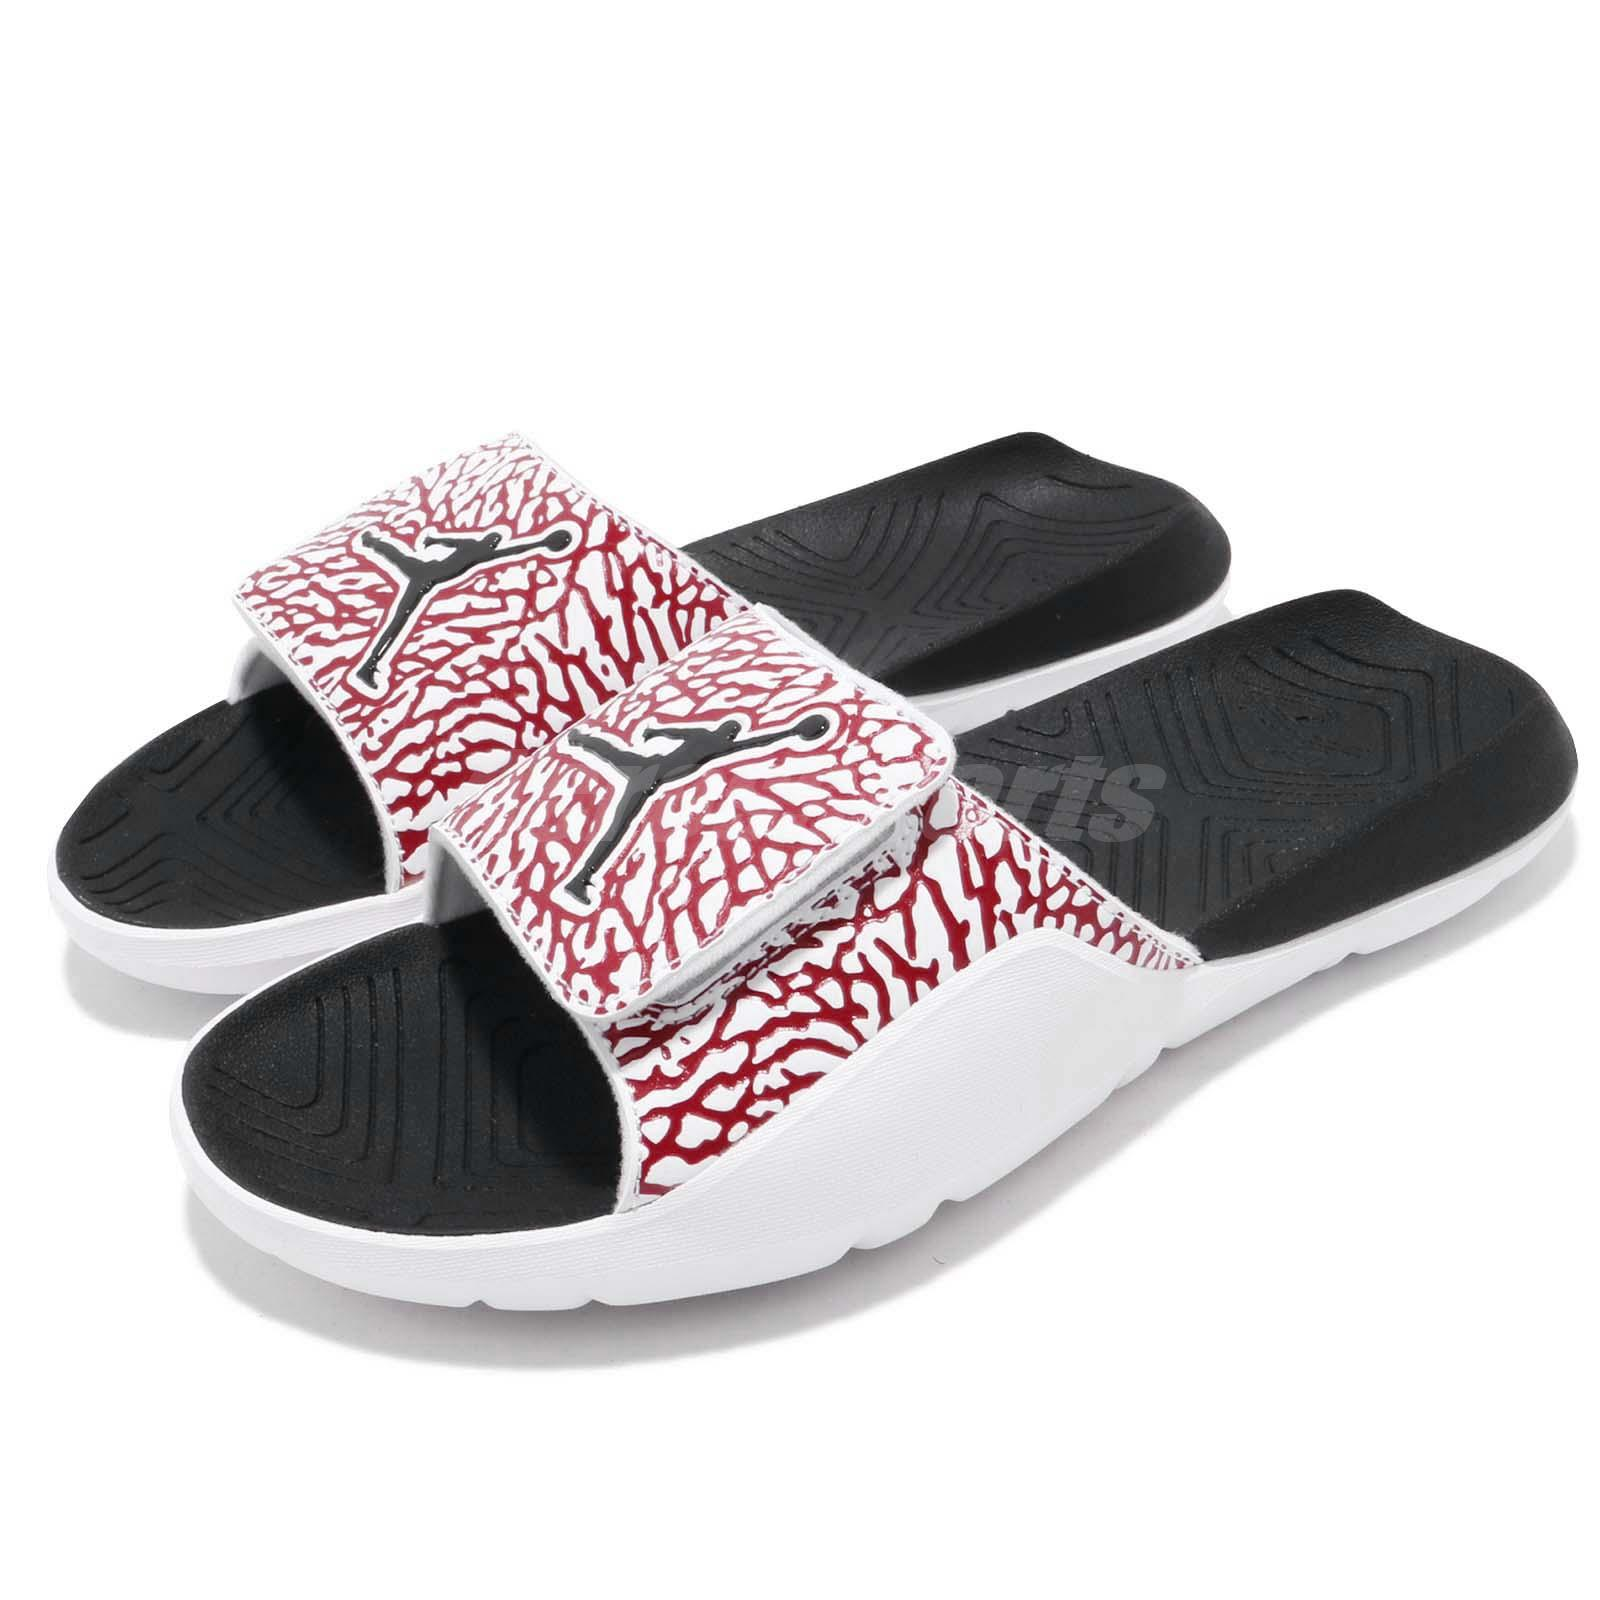 new style 4be43 c50ae Details about Nike Jordan Hydro 7 V2 White Red Men Sports Sandals Slides  Slippers BQ6290-106